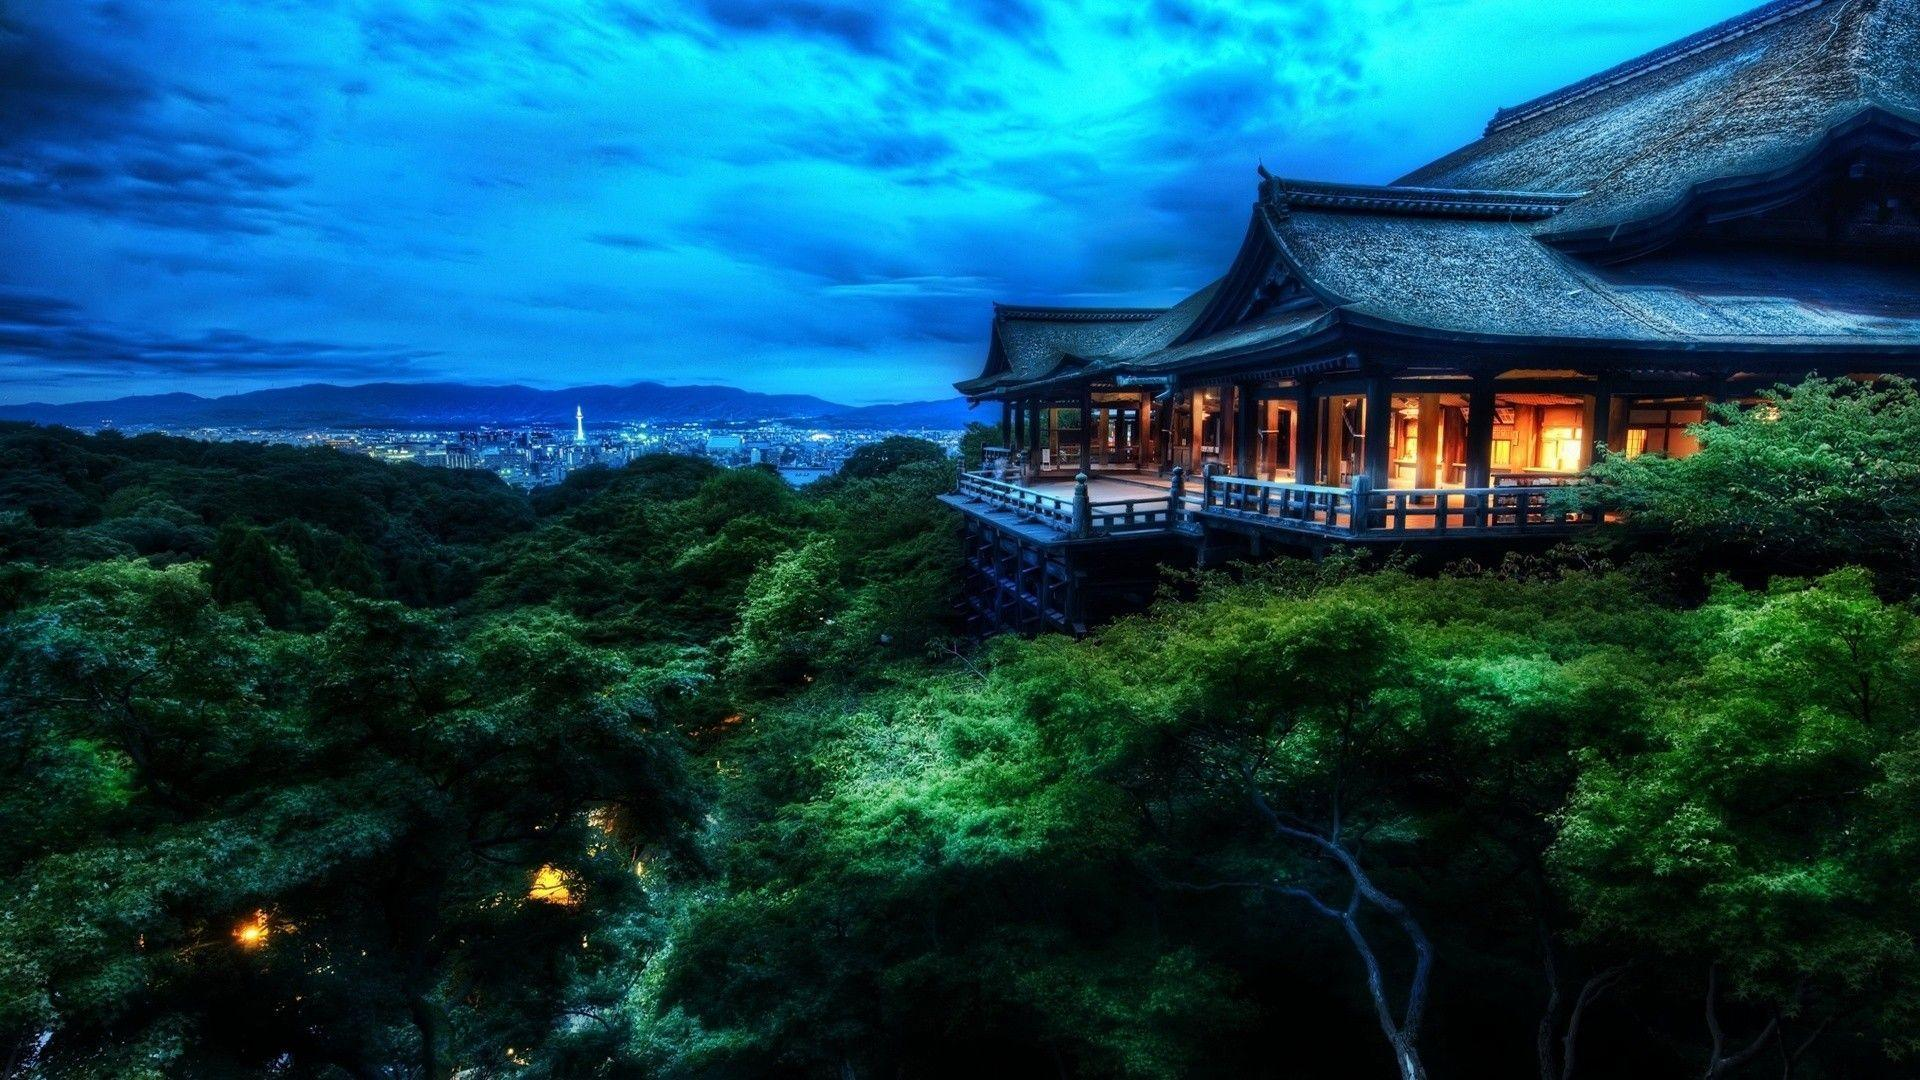 Japan Night Landscape Wallpapers HD Wallpapers